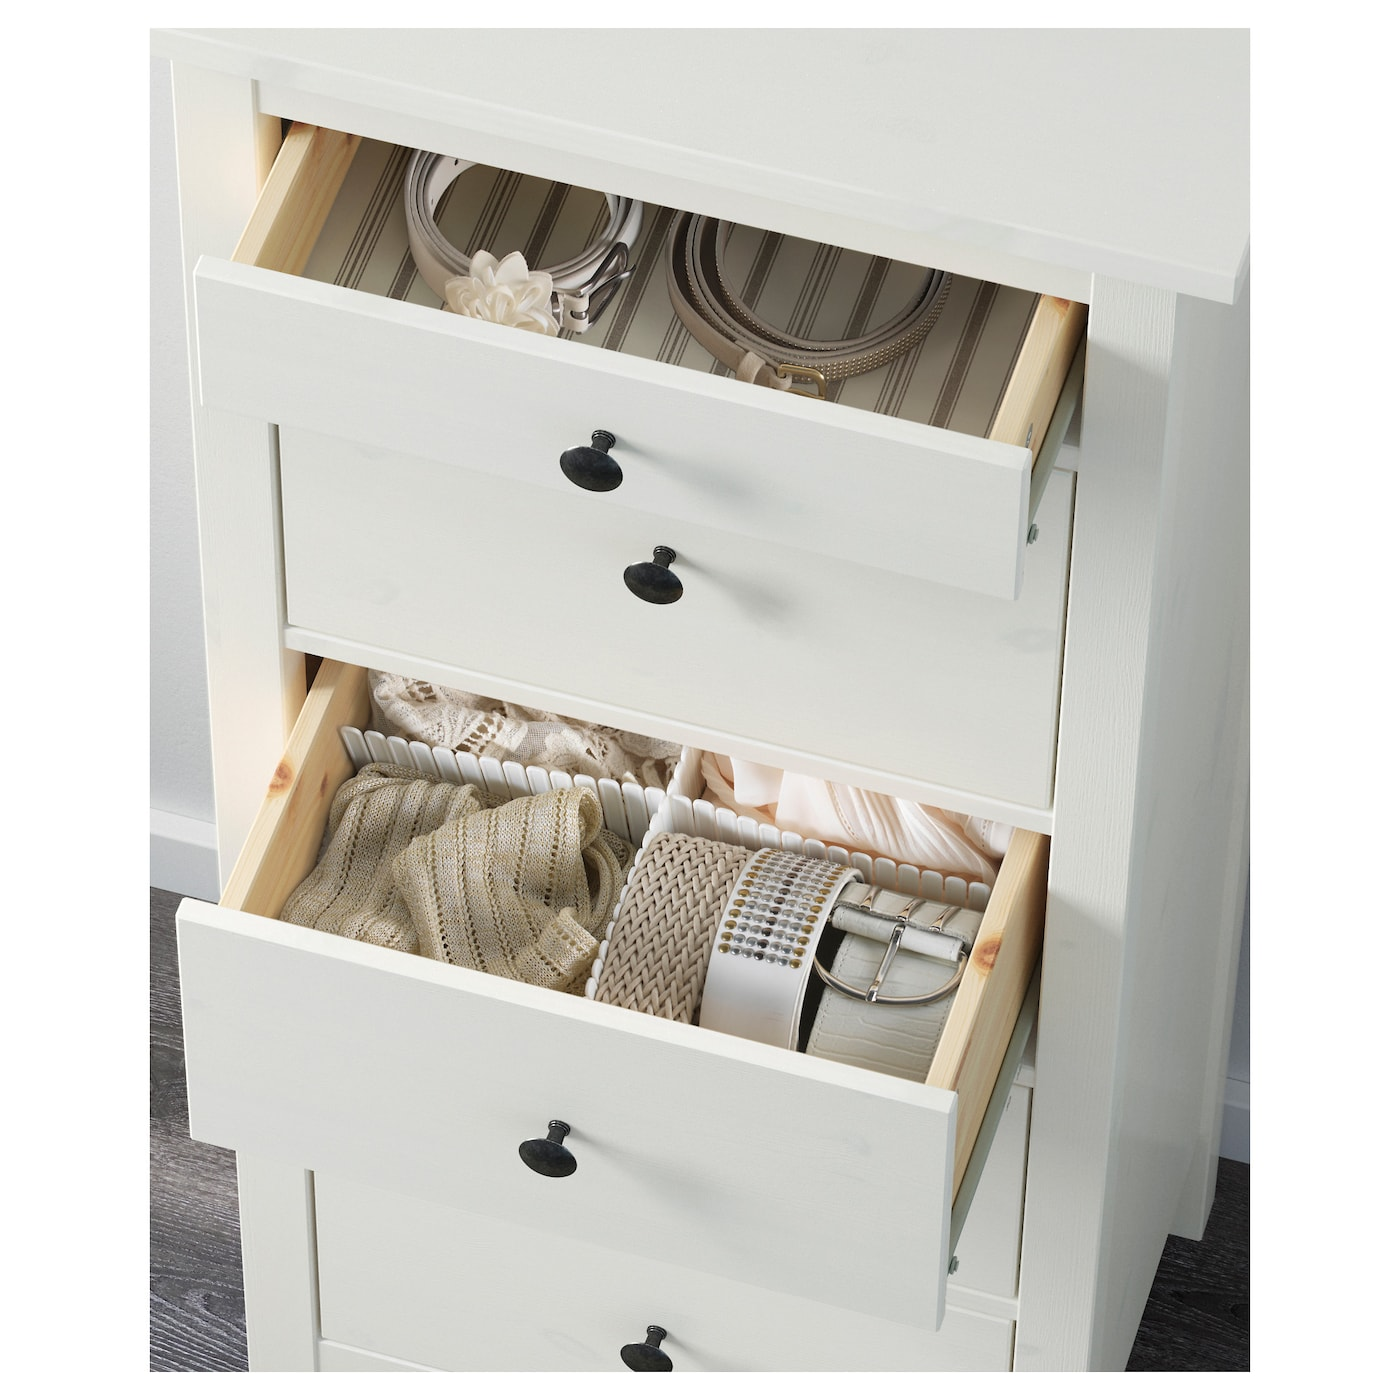 IKEA HEMNES chest of 5 drawers Made of solid wood, which is a hardwearing and warm natural material.